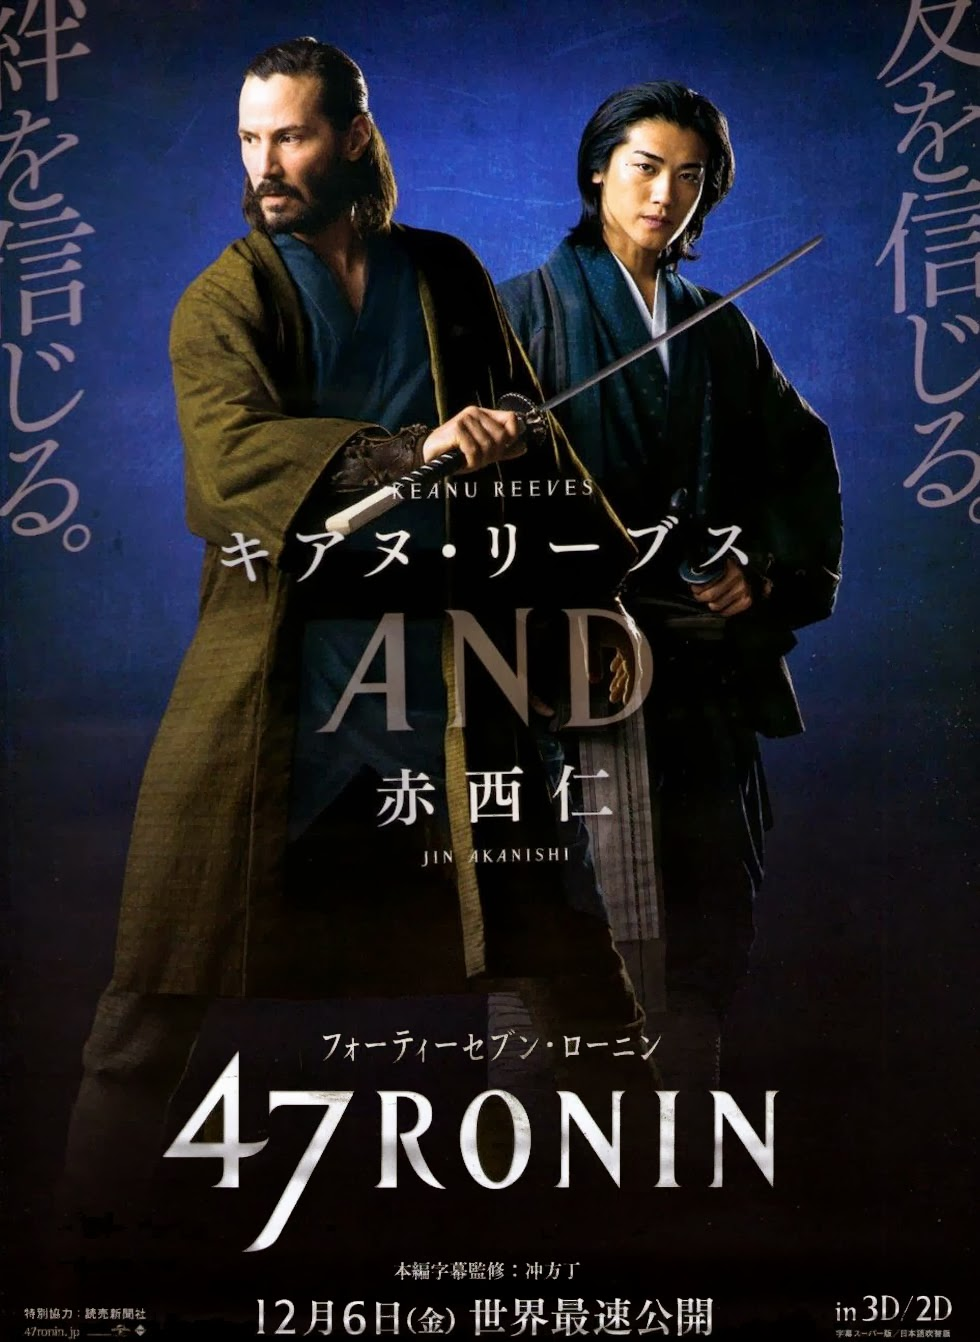 47 ronin Watch trailers, read customer and critic reviews, and buy 47 ronin directed by carl rinsch for $1499.